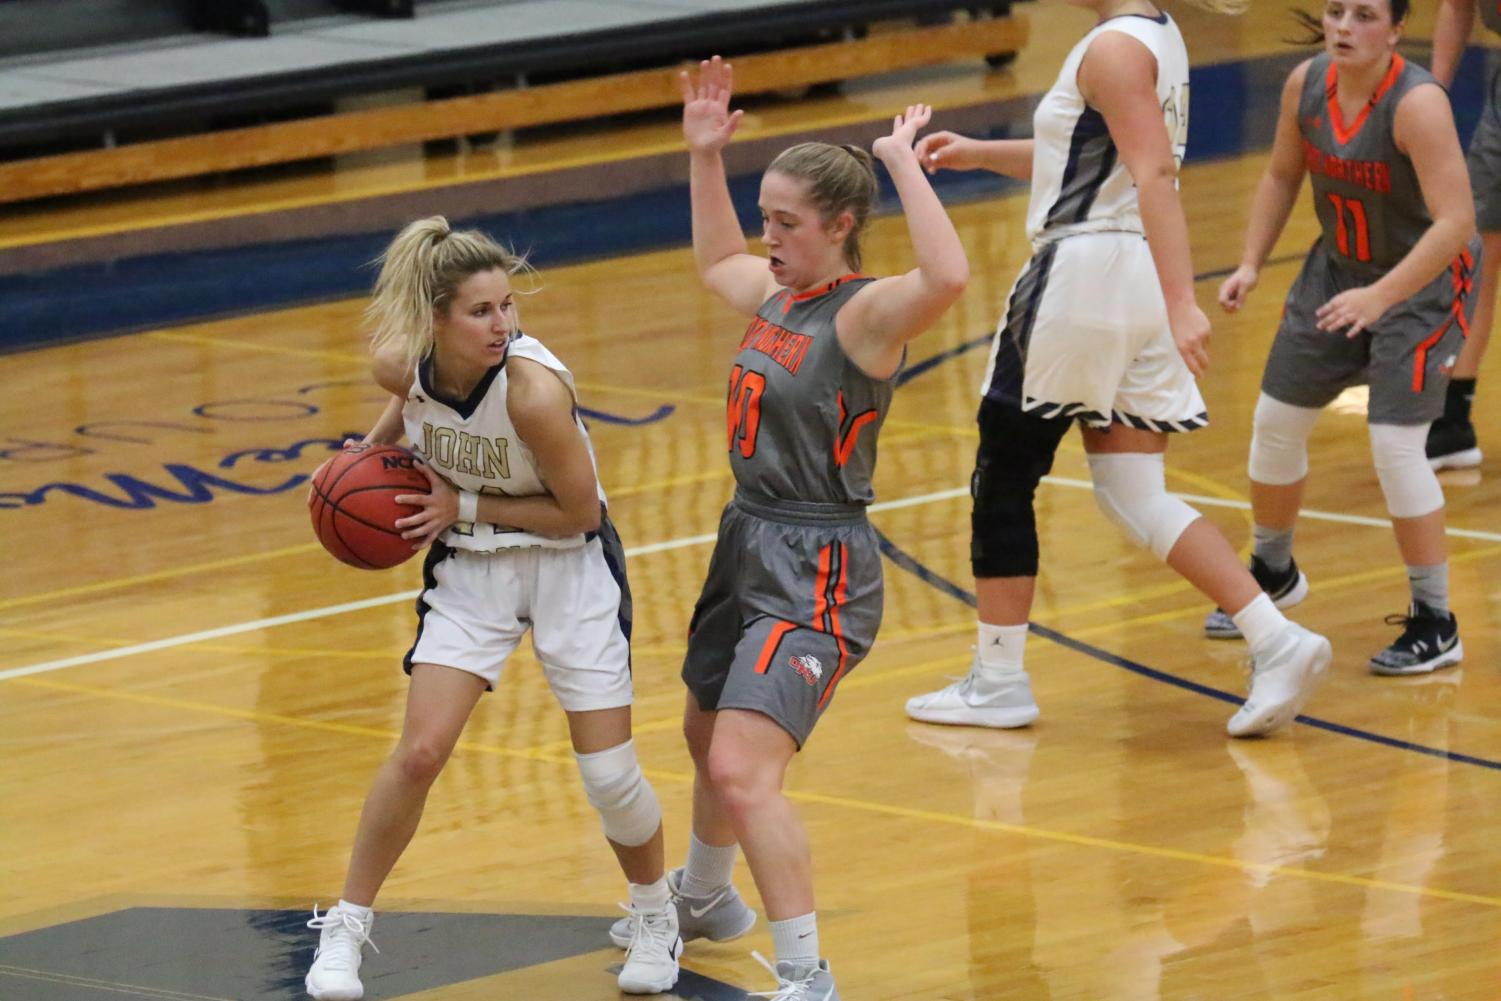 Senior point guard Kahrin Spear looks to get by an Ohio Northern defender in the final home game of the 2018 season for the Blue Streaks women.